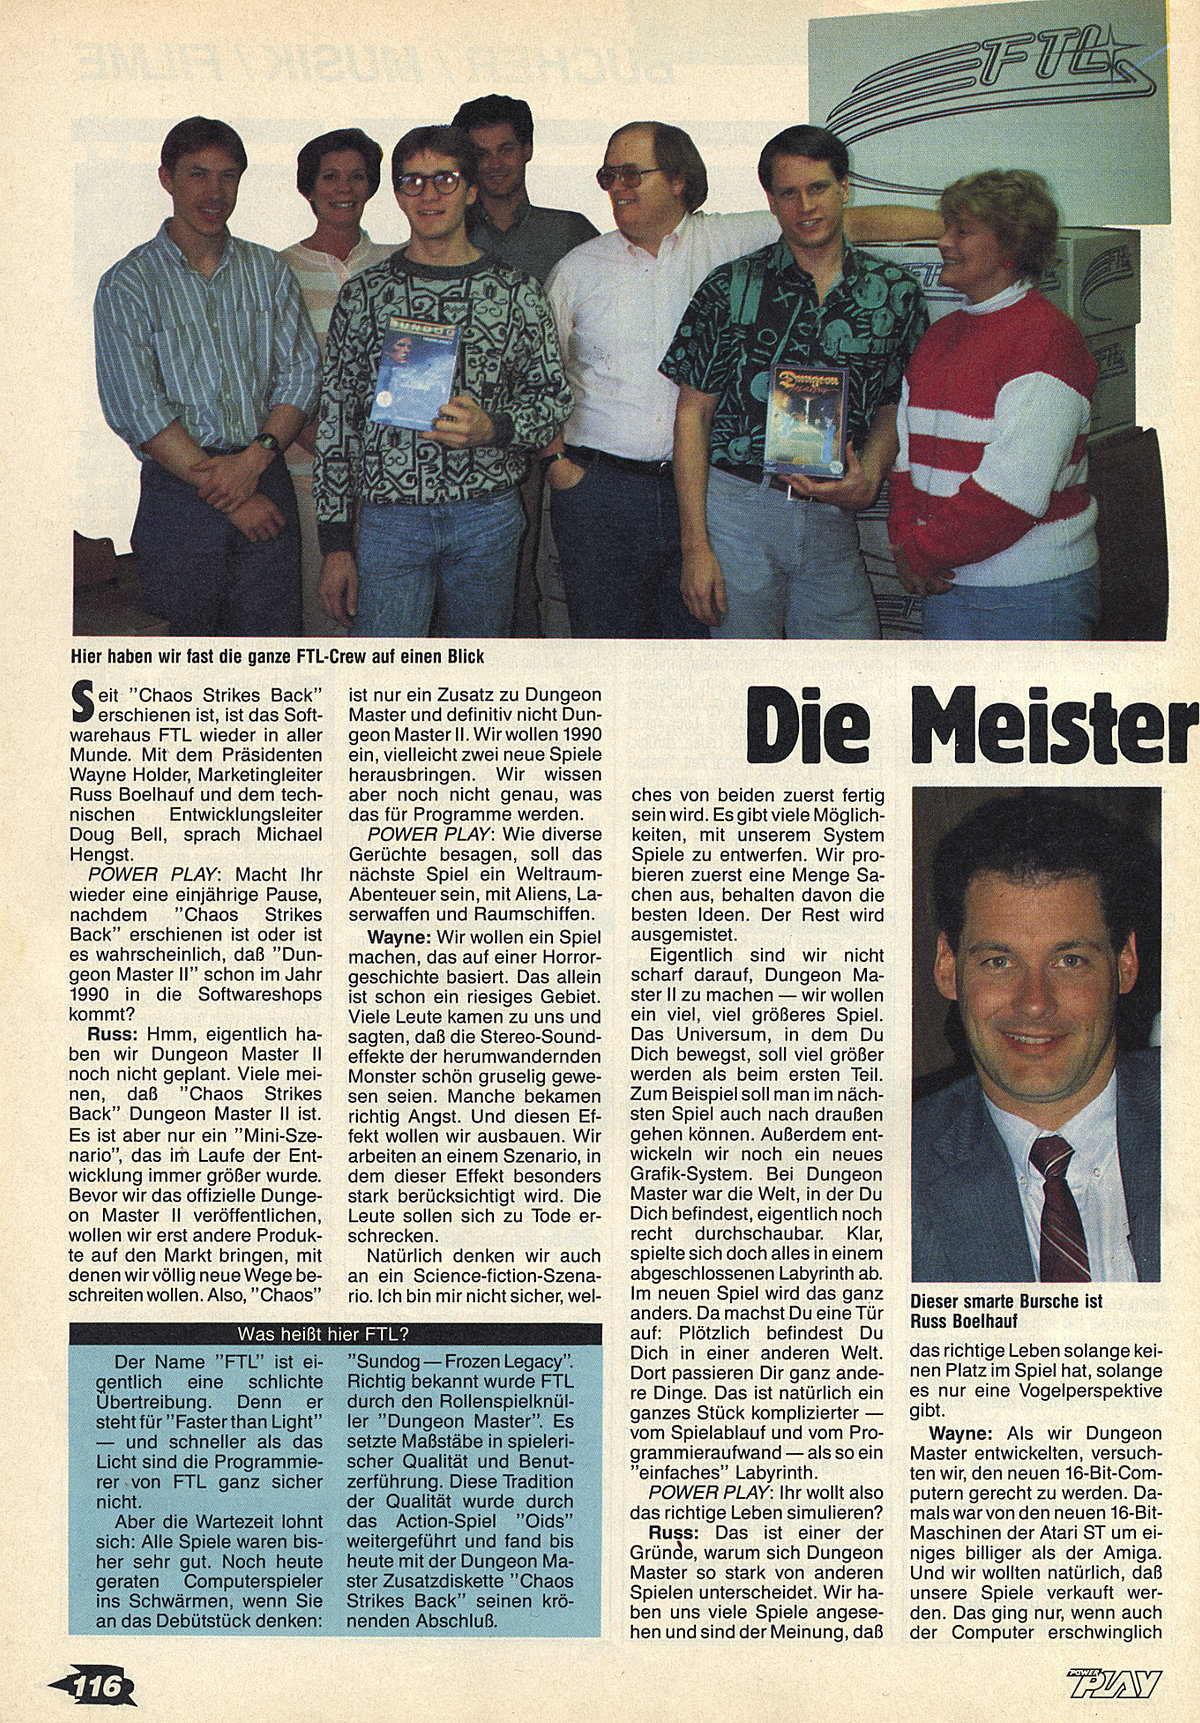 FTL Article published in German magazine 'Power Play', March 1990, Page 116